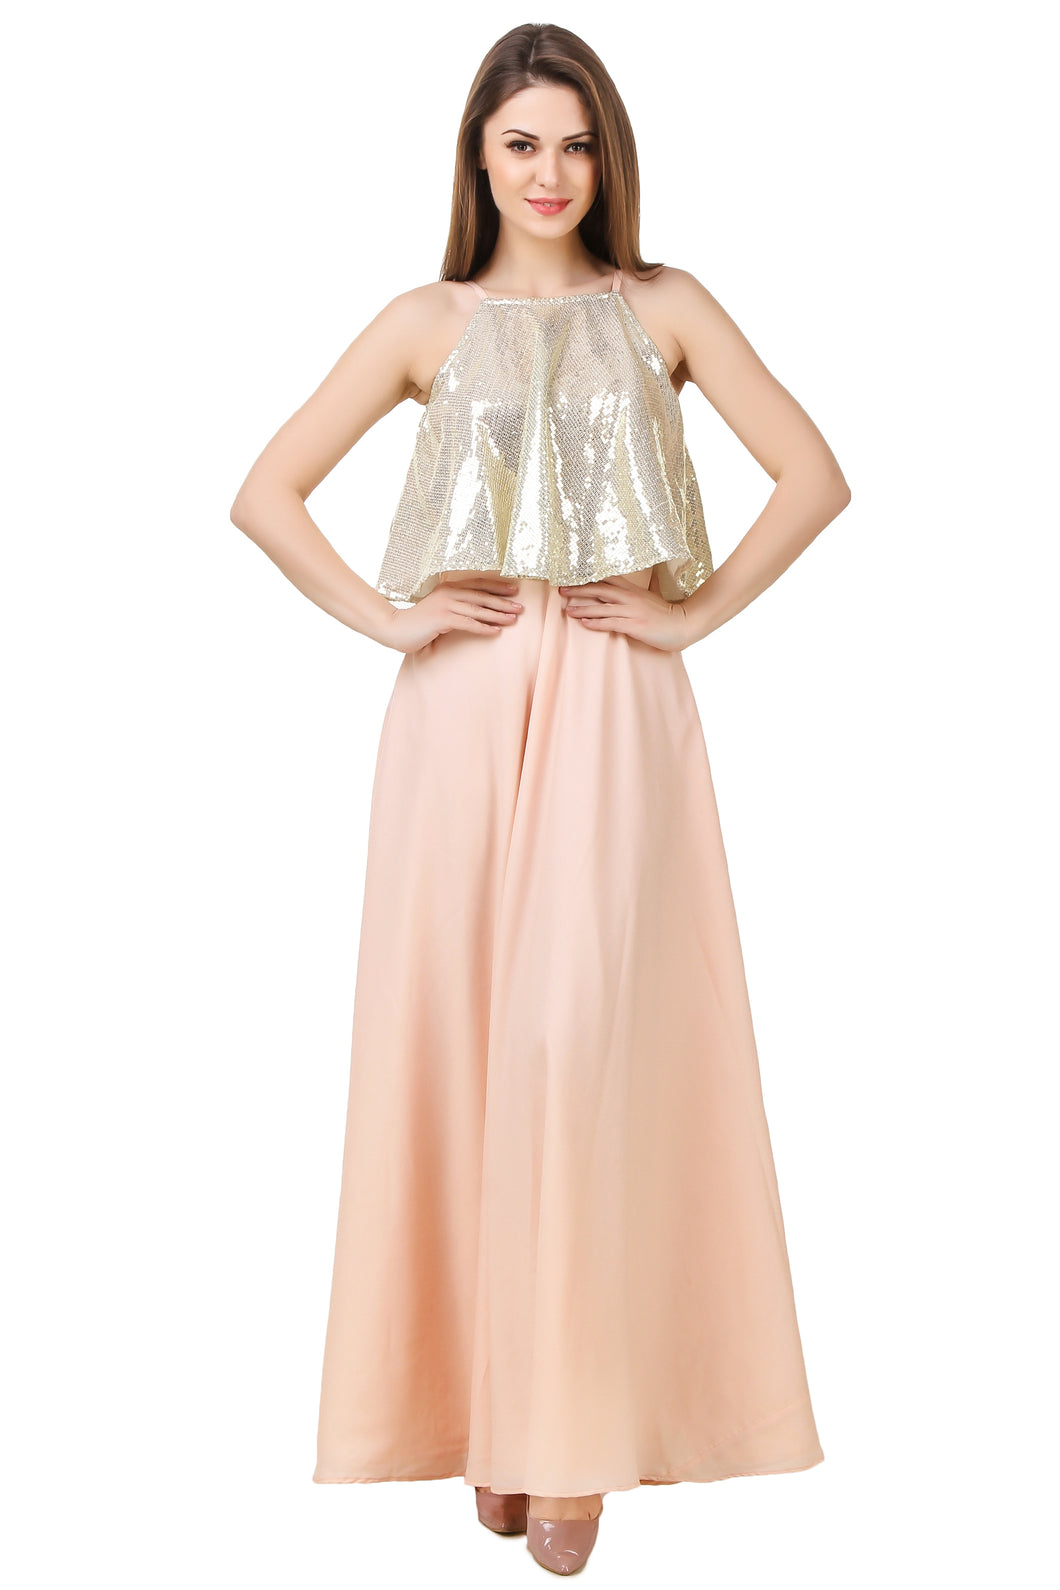 Light-Peach Maxi Dress With Sequin Top Overlapping